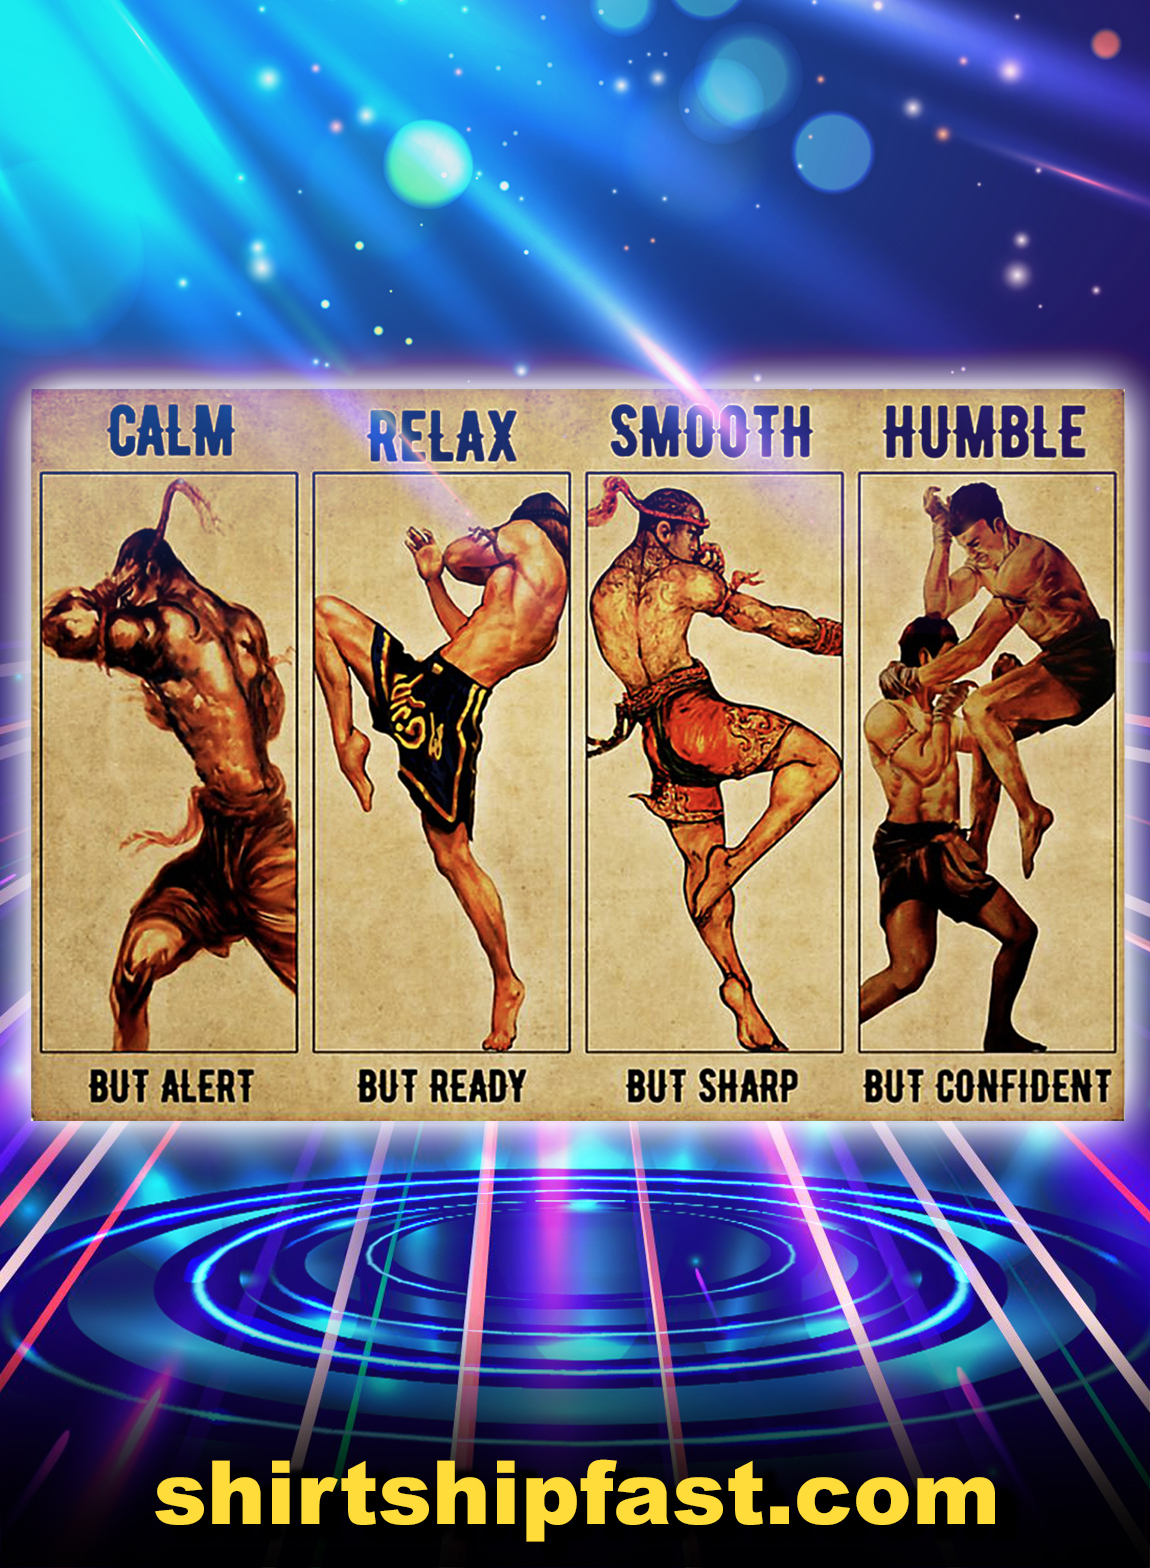 Calm relax smooth humble muay thai poster - A2